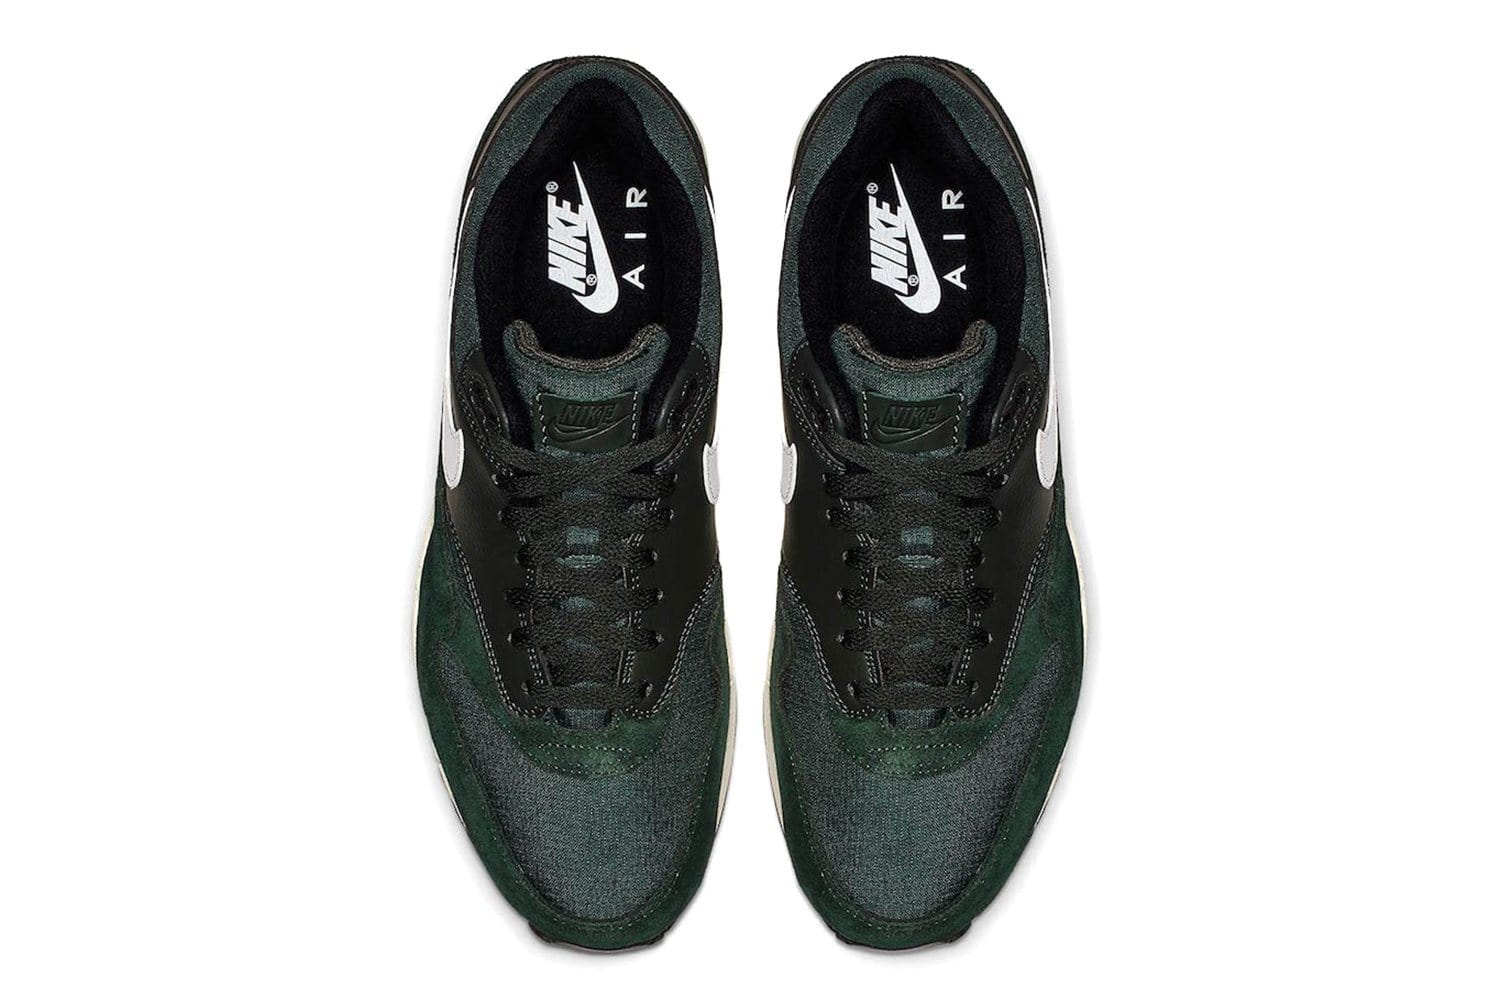 AIR MAX 1 Unclassified NRML